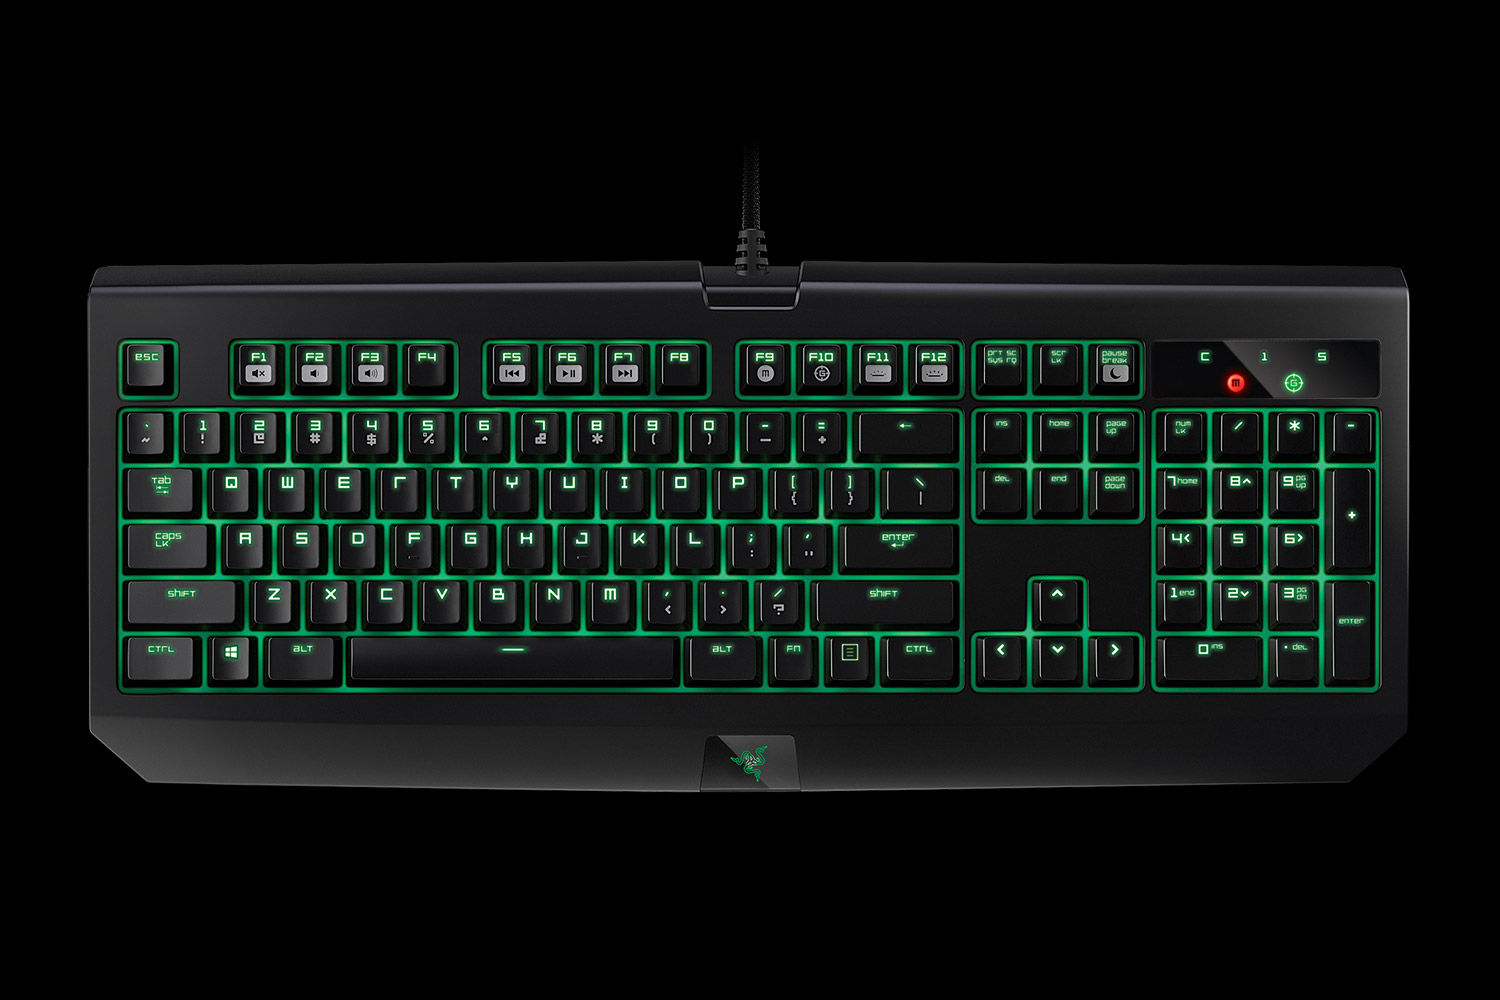 b50b2902aca The Razer BlackWidow Ultimate features individually backlit keys that are  customizable through Razer's Synapse software. It also comes with the Razer  ...